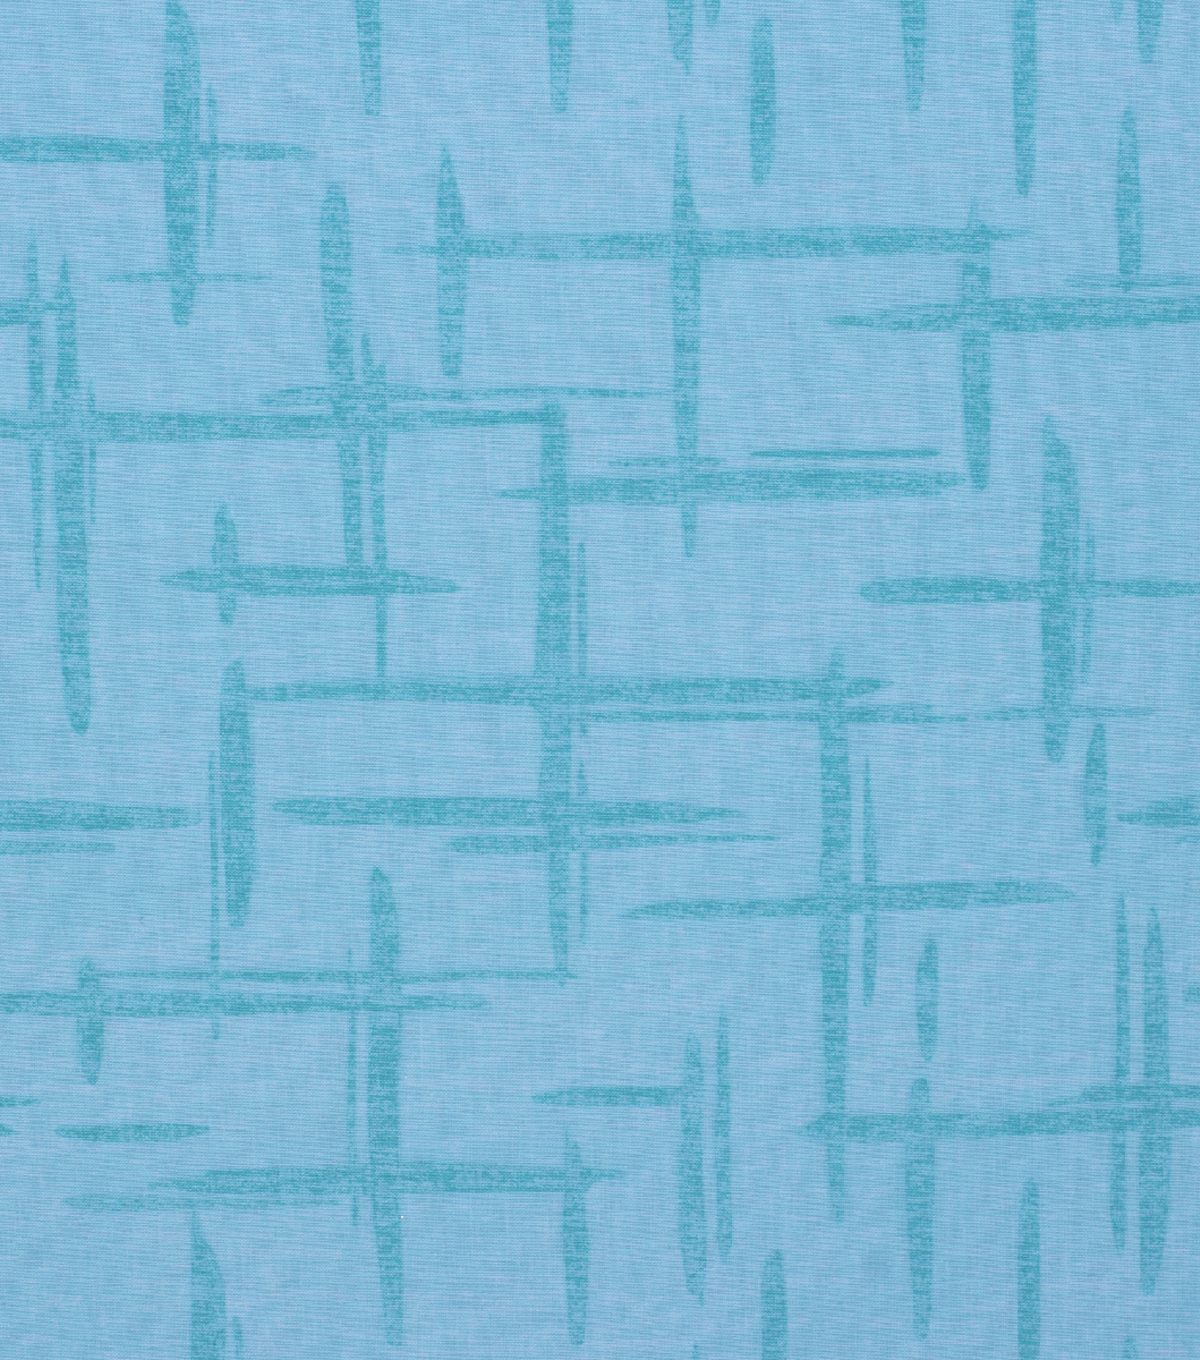 Keepsake Calico Cotton Fabric-Large Broken Crosshatch Teal